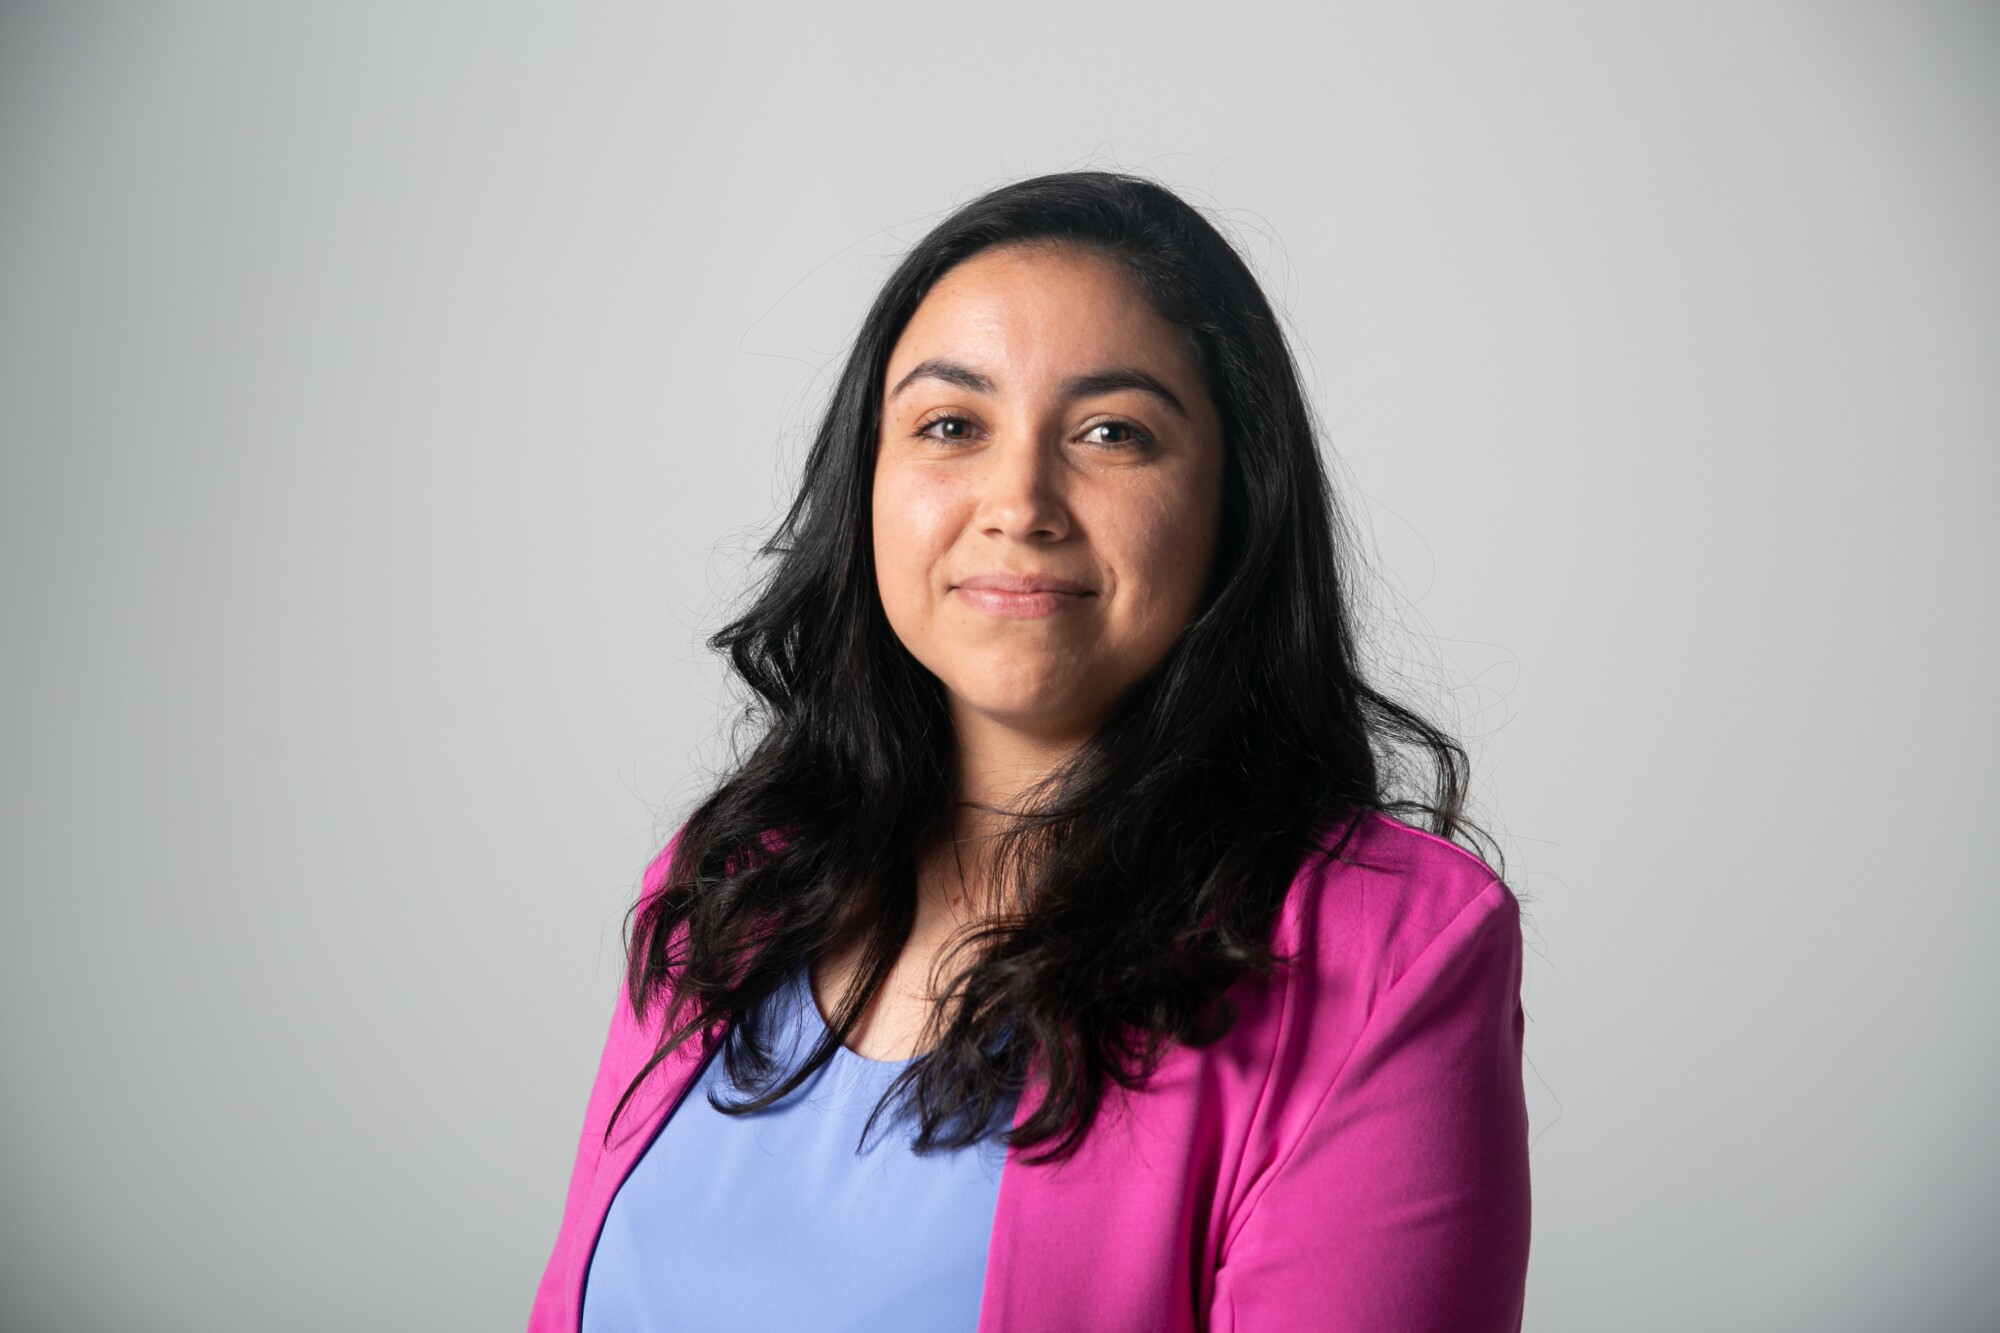 Sophia Rodriguez, candidate for the San Diego County Board of Supervisors District 1